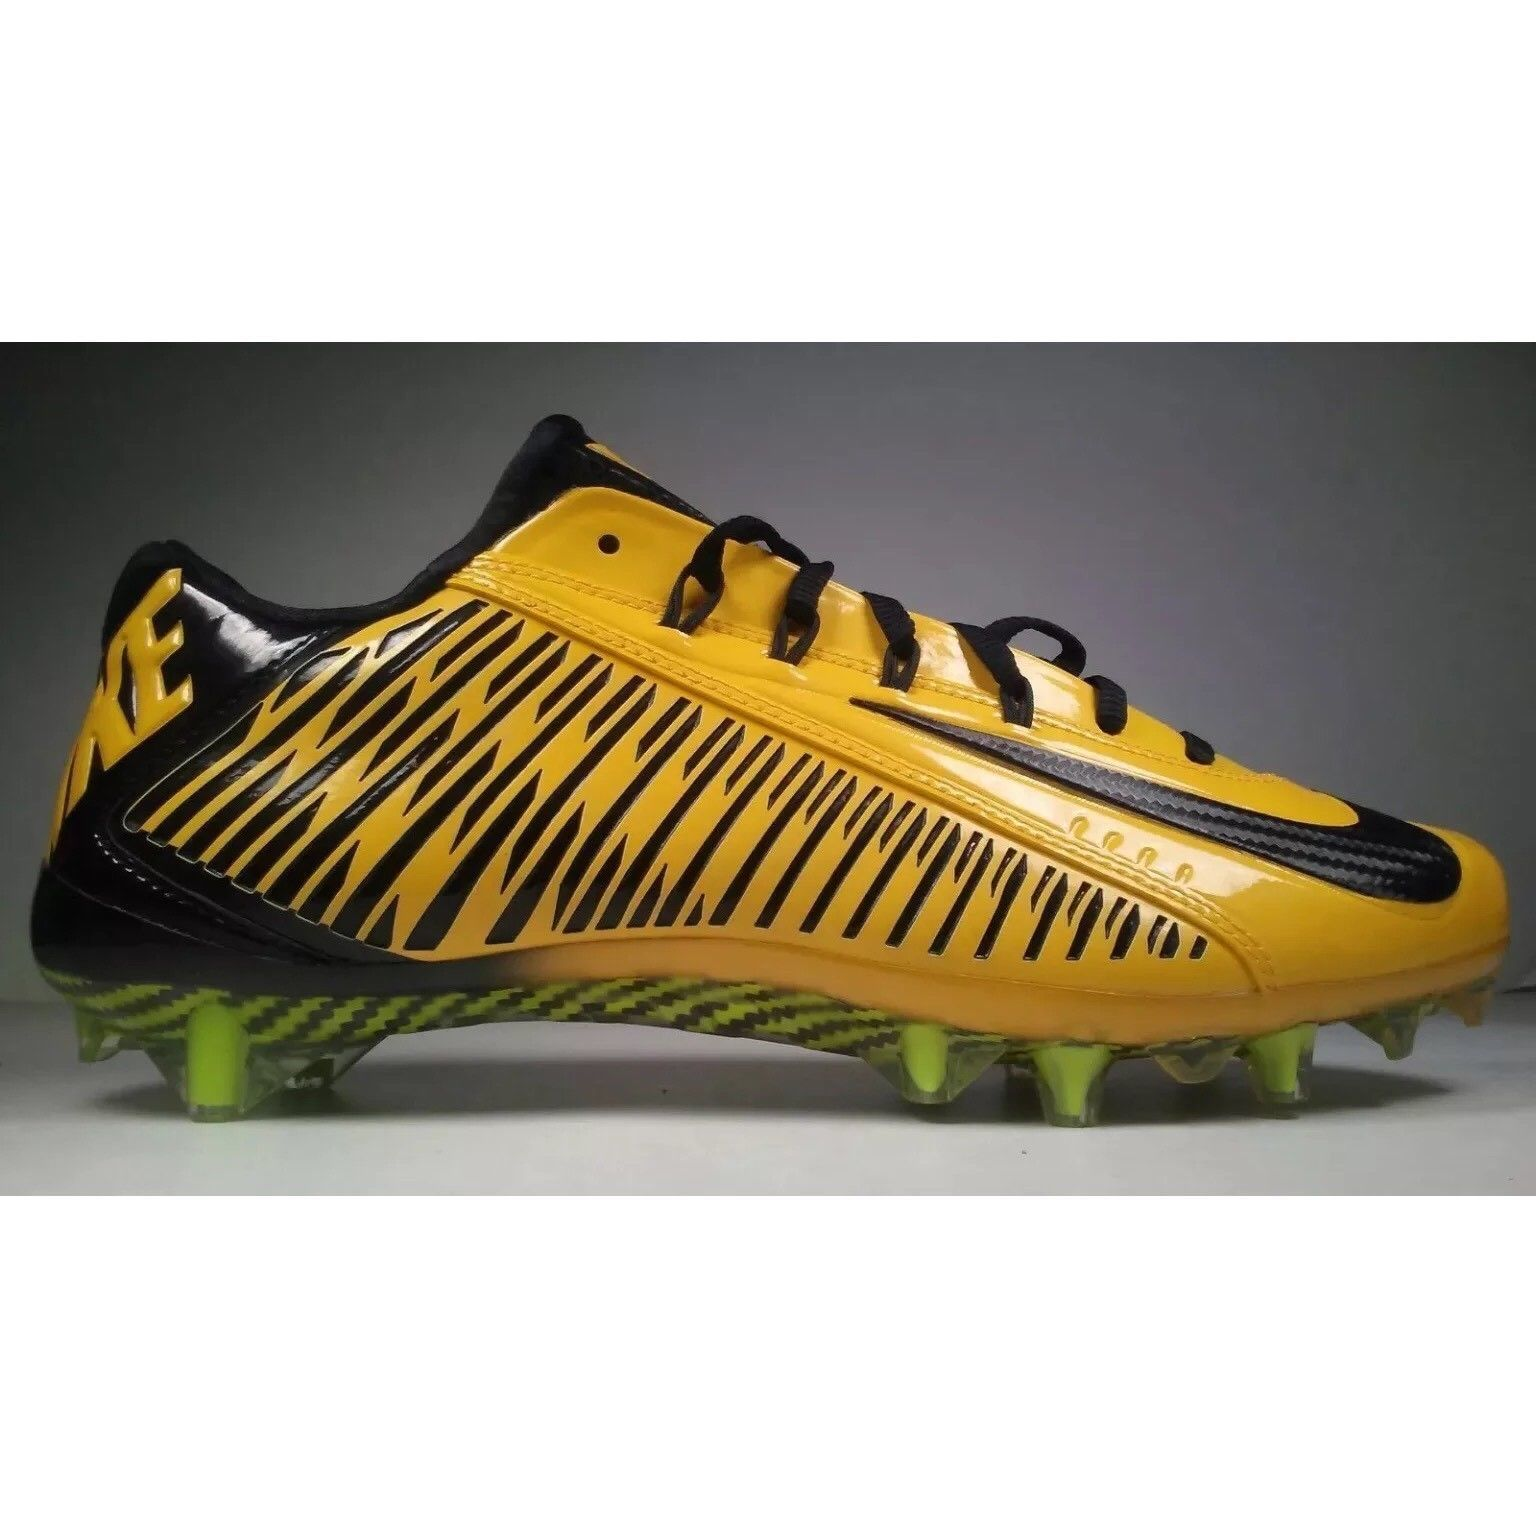 0e1ef4bf9bd Nike 657441-725 Vapor Carbon 2.0 Elite TD Size 15 Football Cleats  150  CLEARANCE